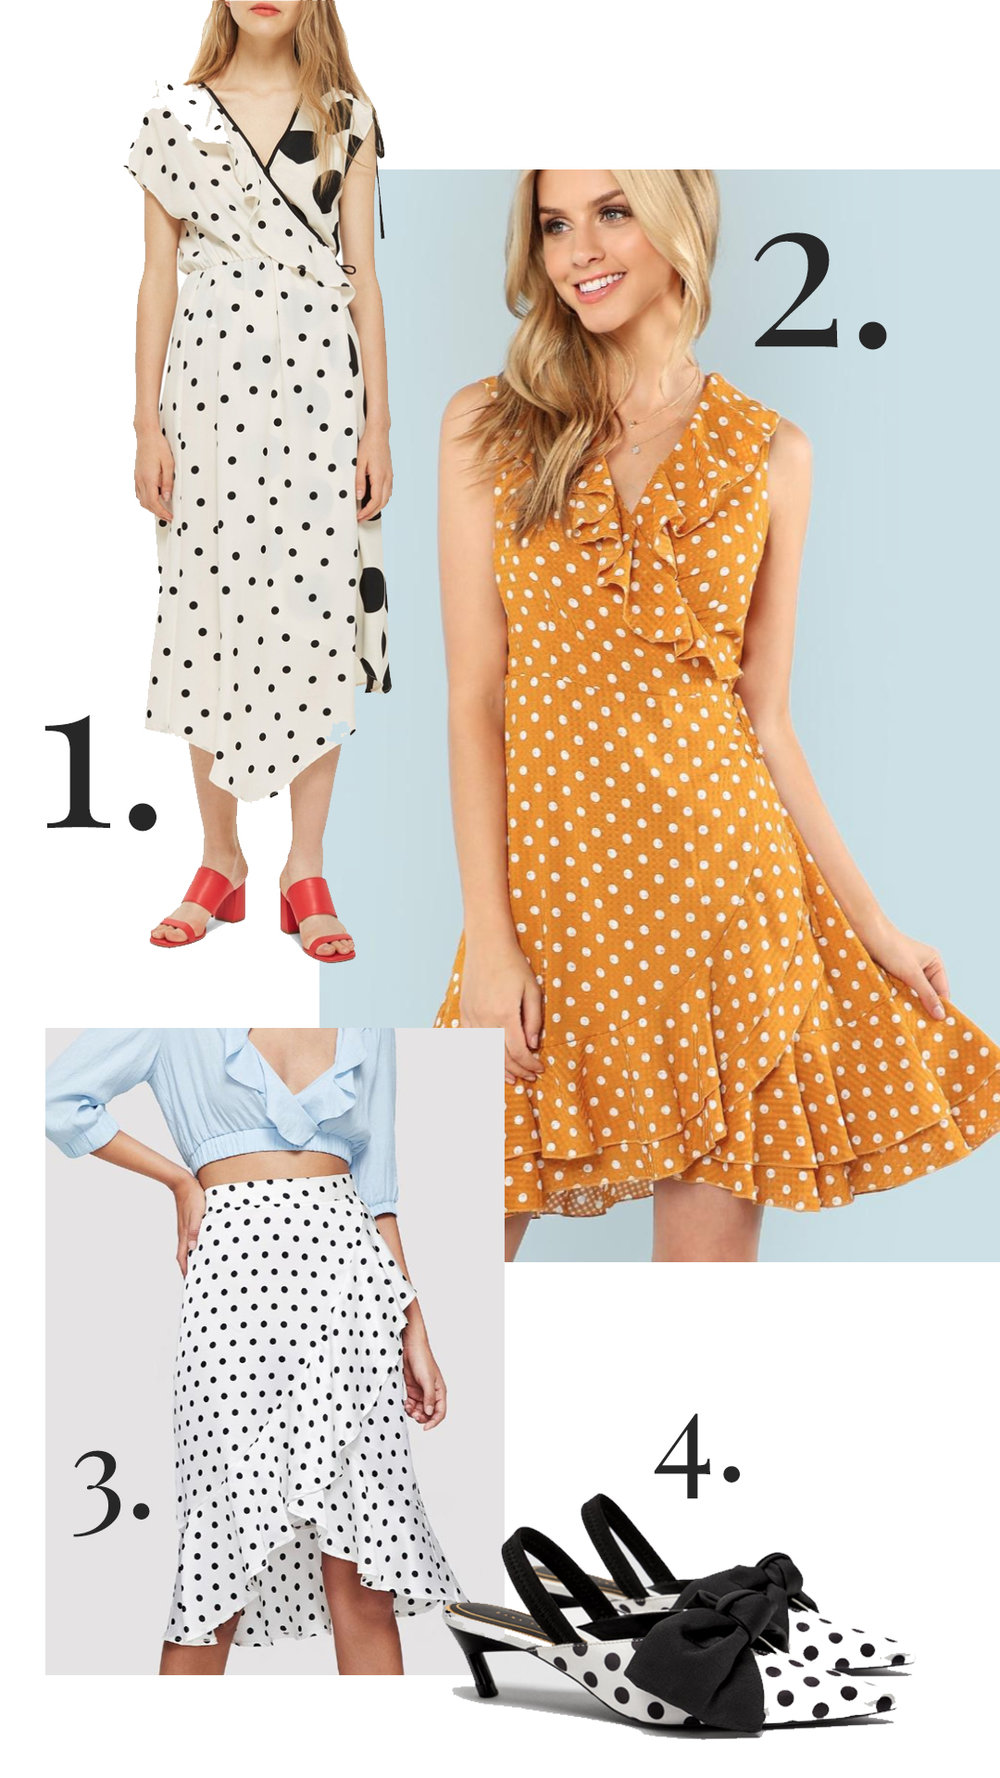 Polka-dot-report-shop-polka-dot-outfits.jpg